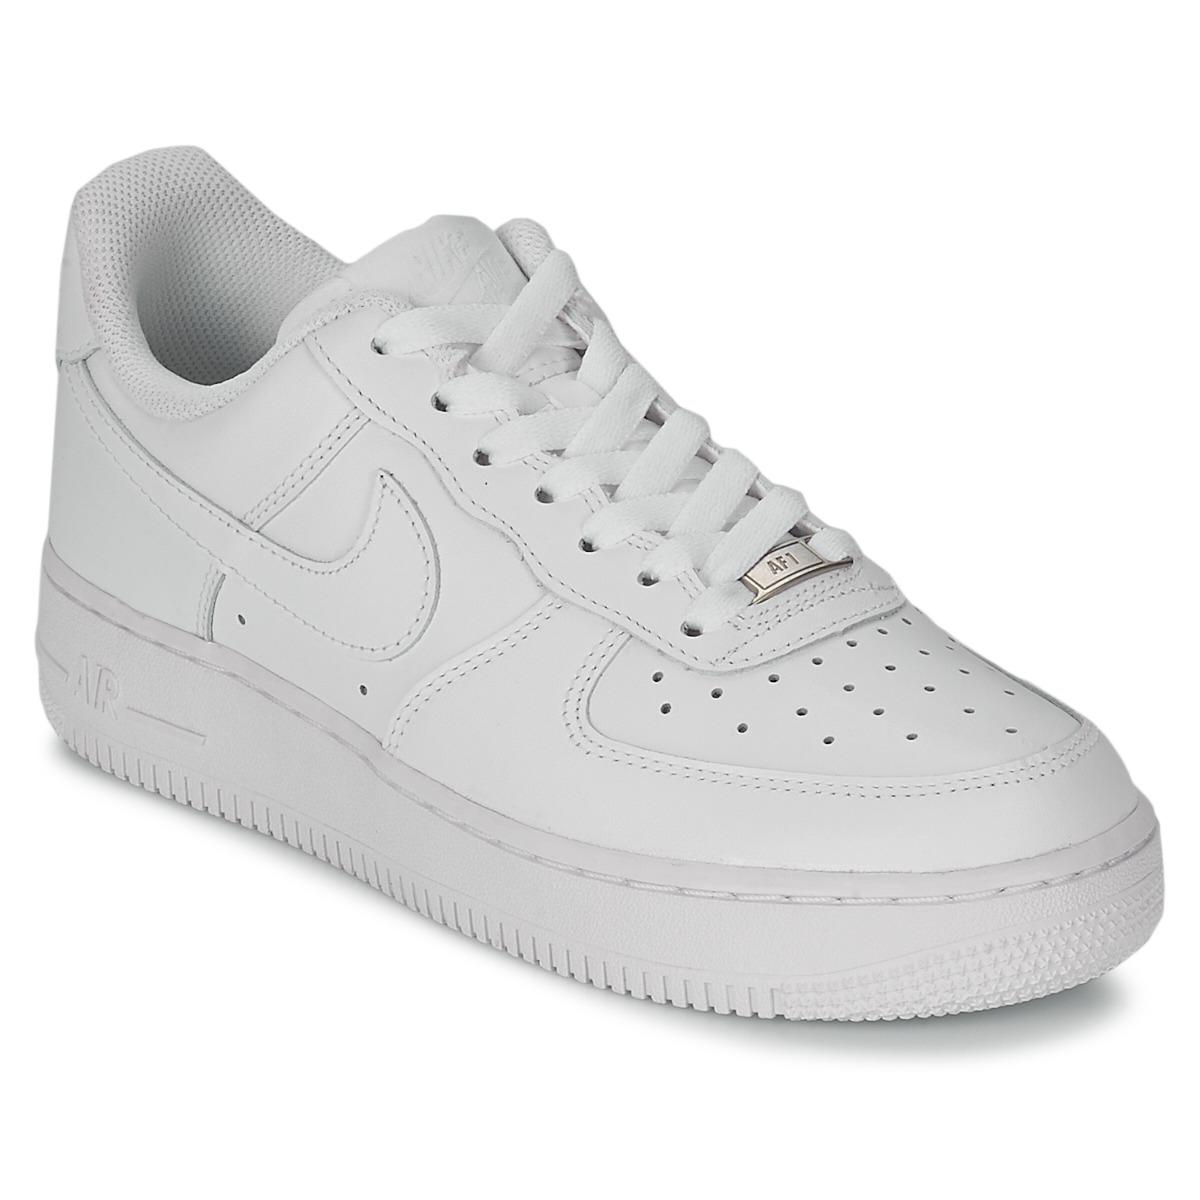 ca4fab4634396e Nike Air Force 1 07 Leather Women s Shoes (trainers) In White in ...